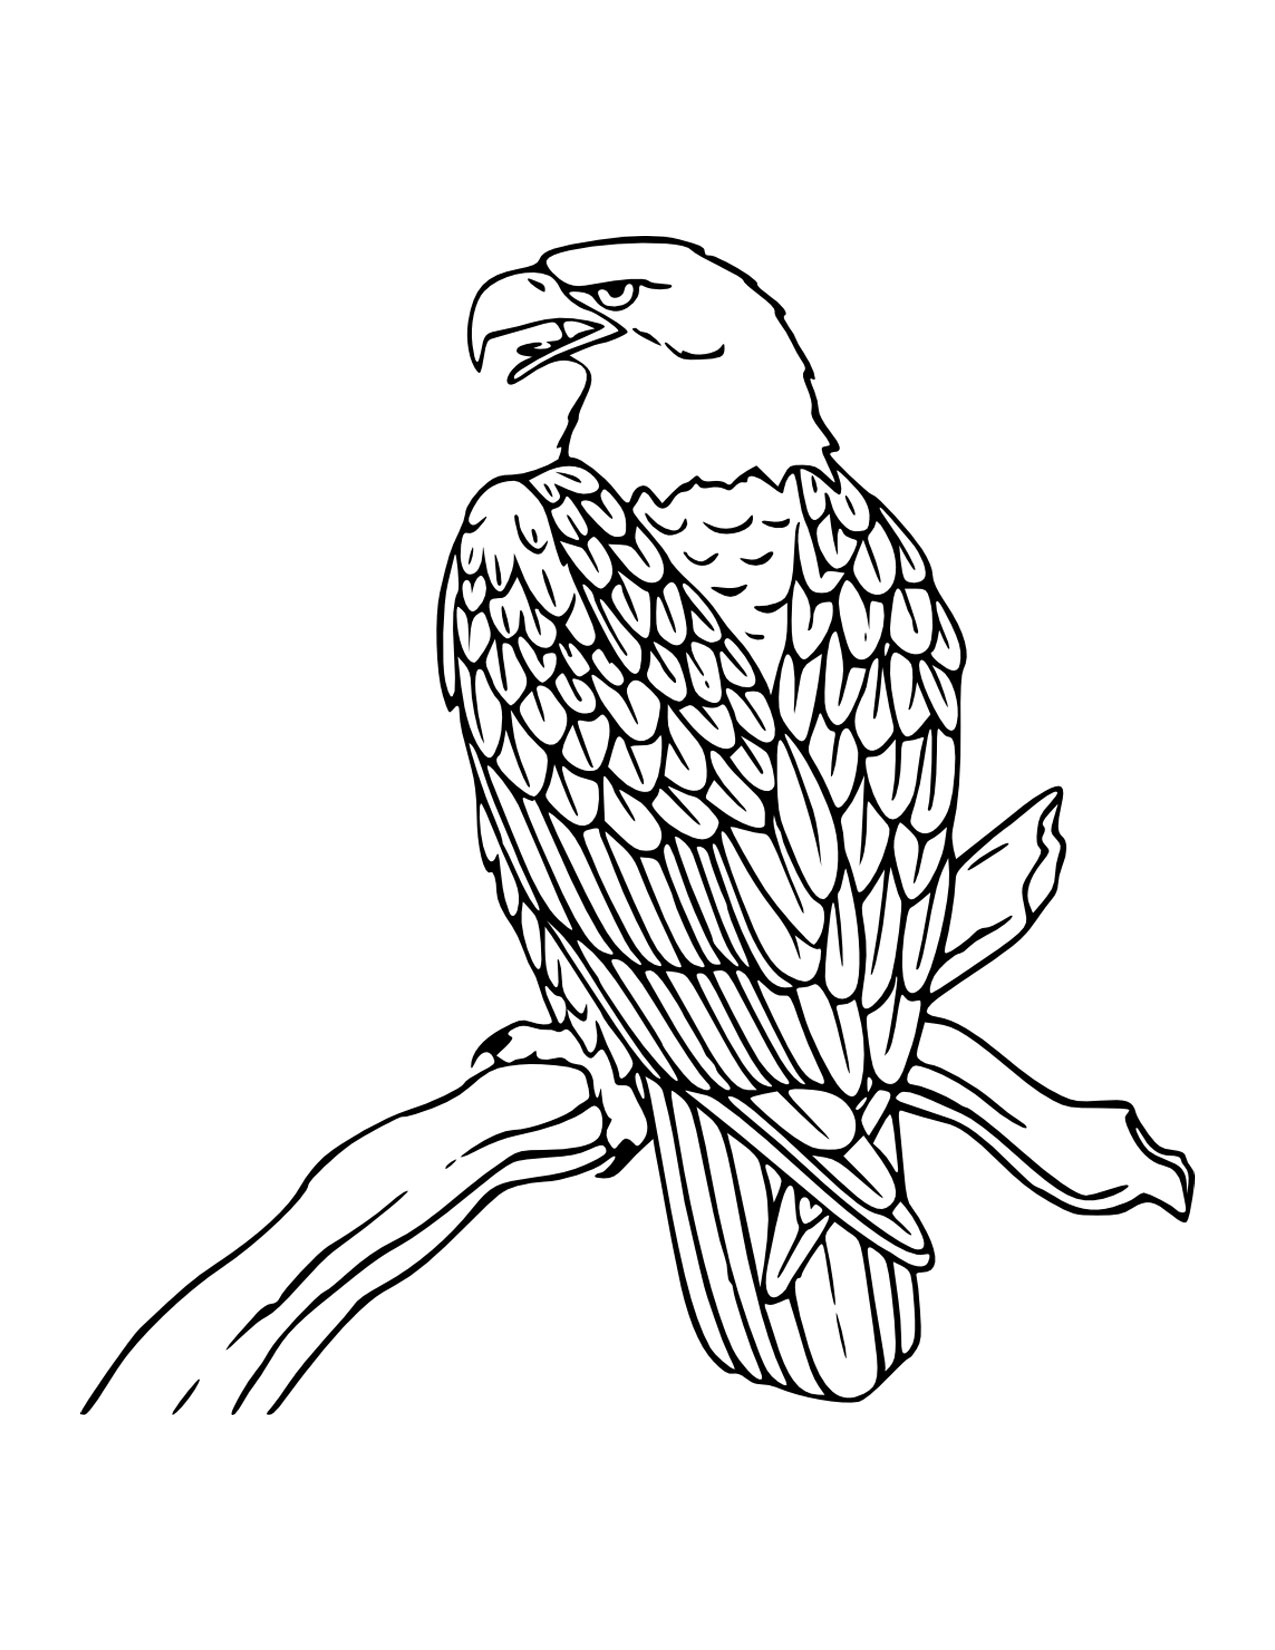 coloring pages of eagles eagle coloring pages coloring pages to download and print pages coloring of eagles